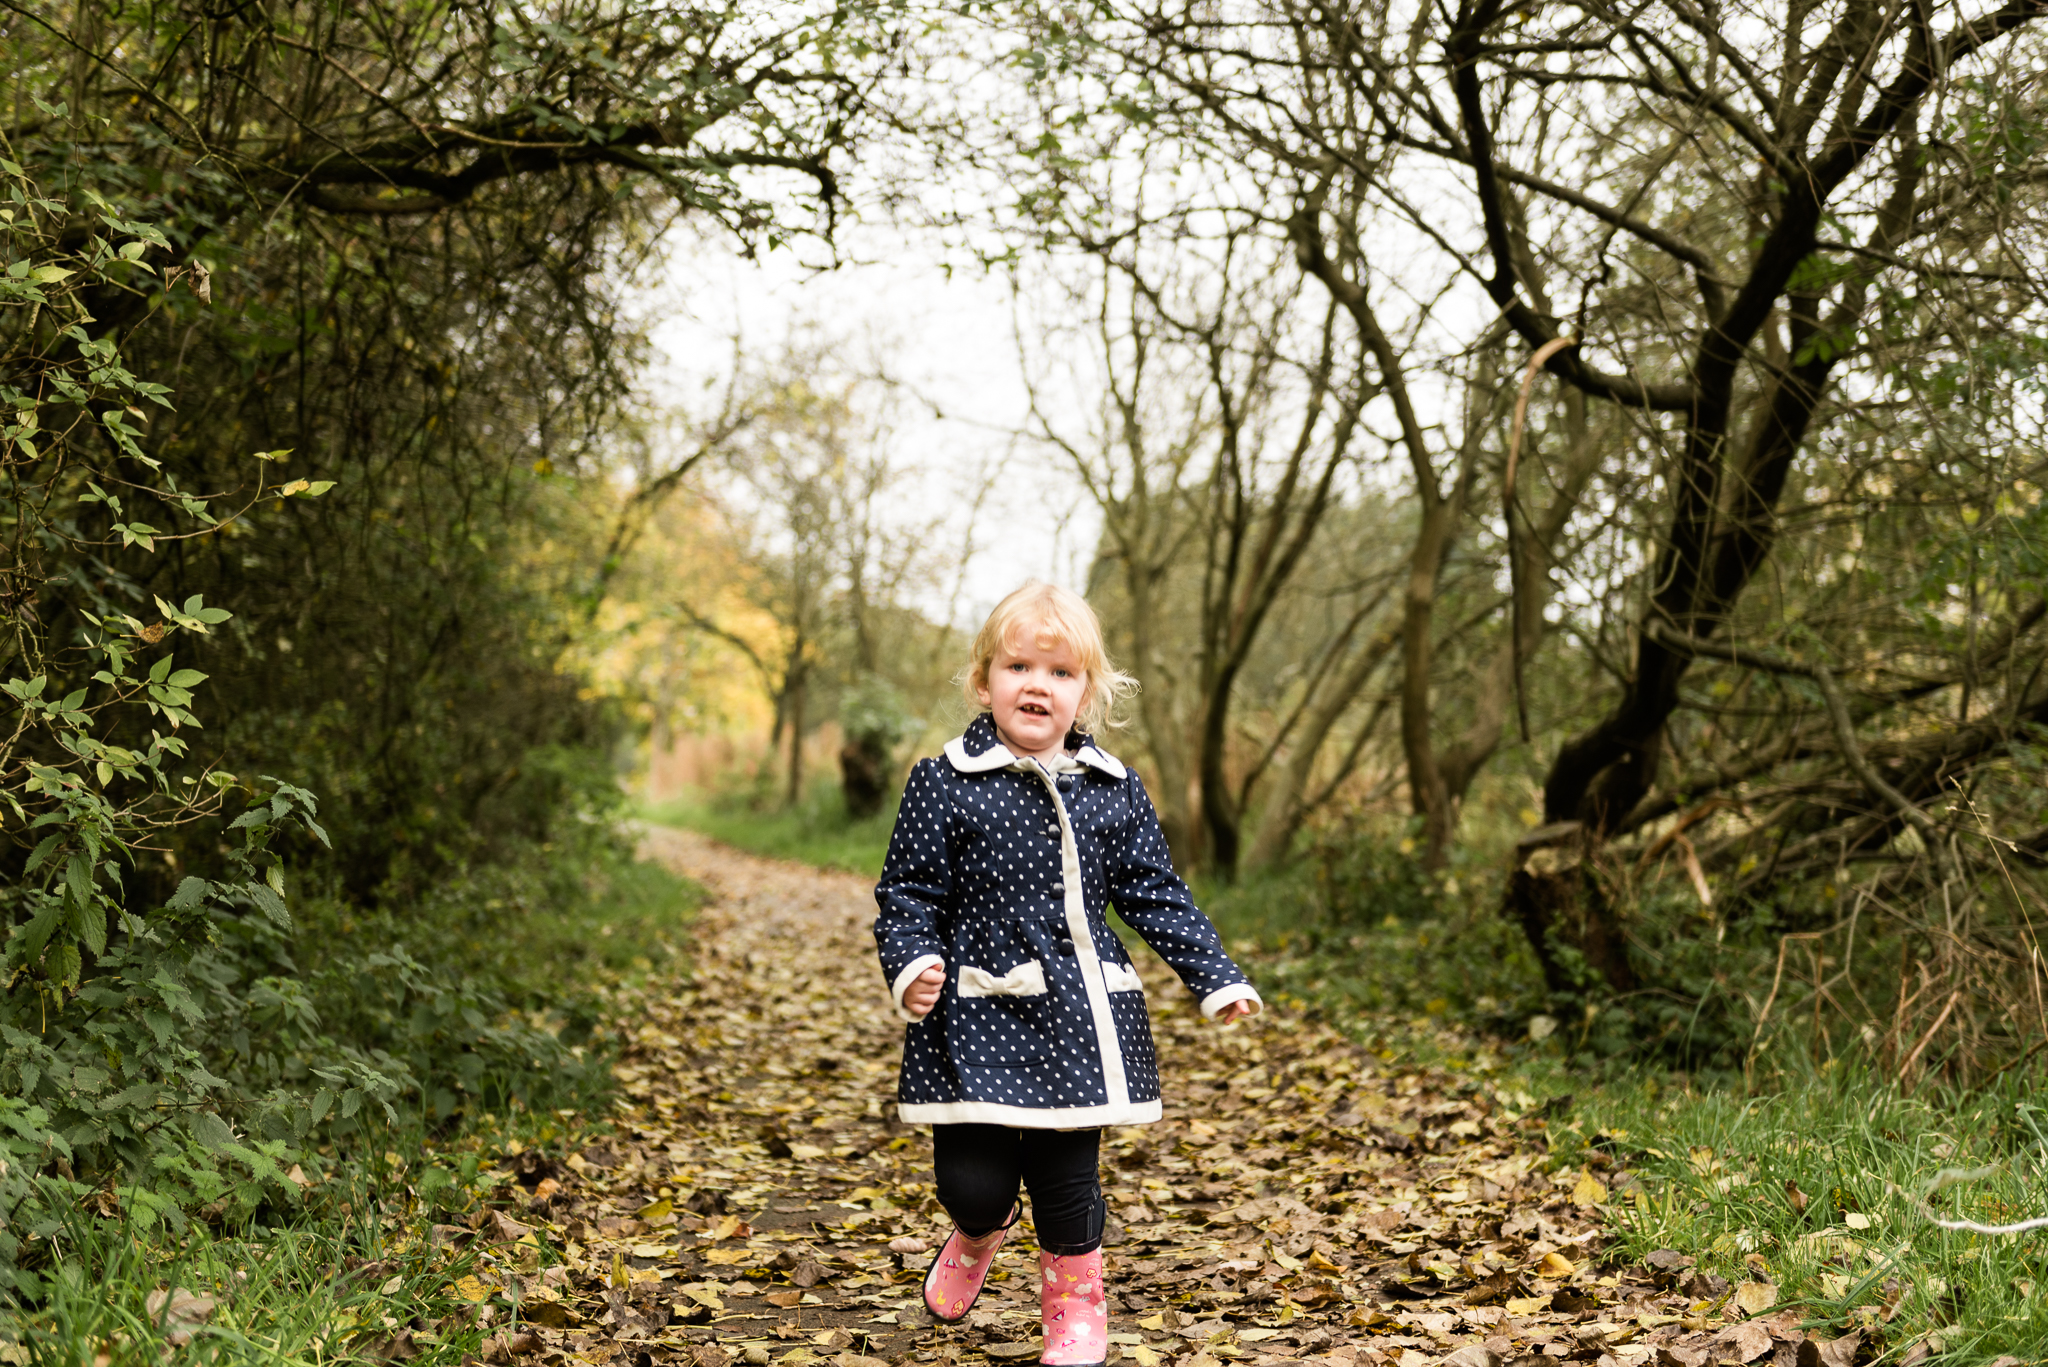 Staffordshire Documentary Family Photography Autumn Lifestyle Fall Leaves - Jenny Harper-7.jpg